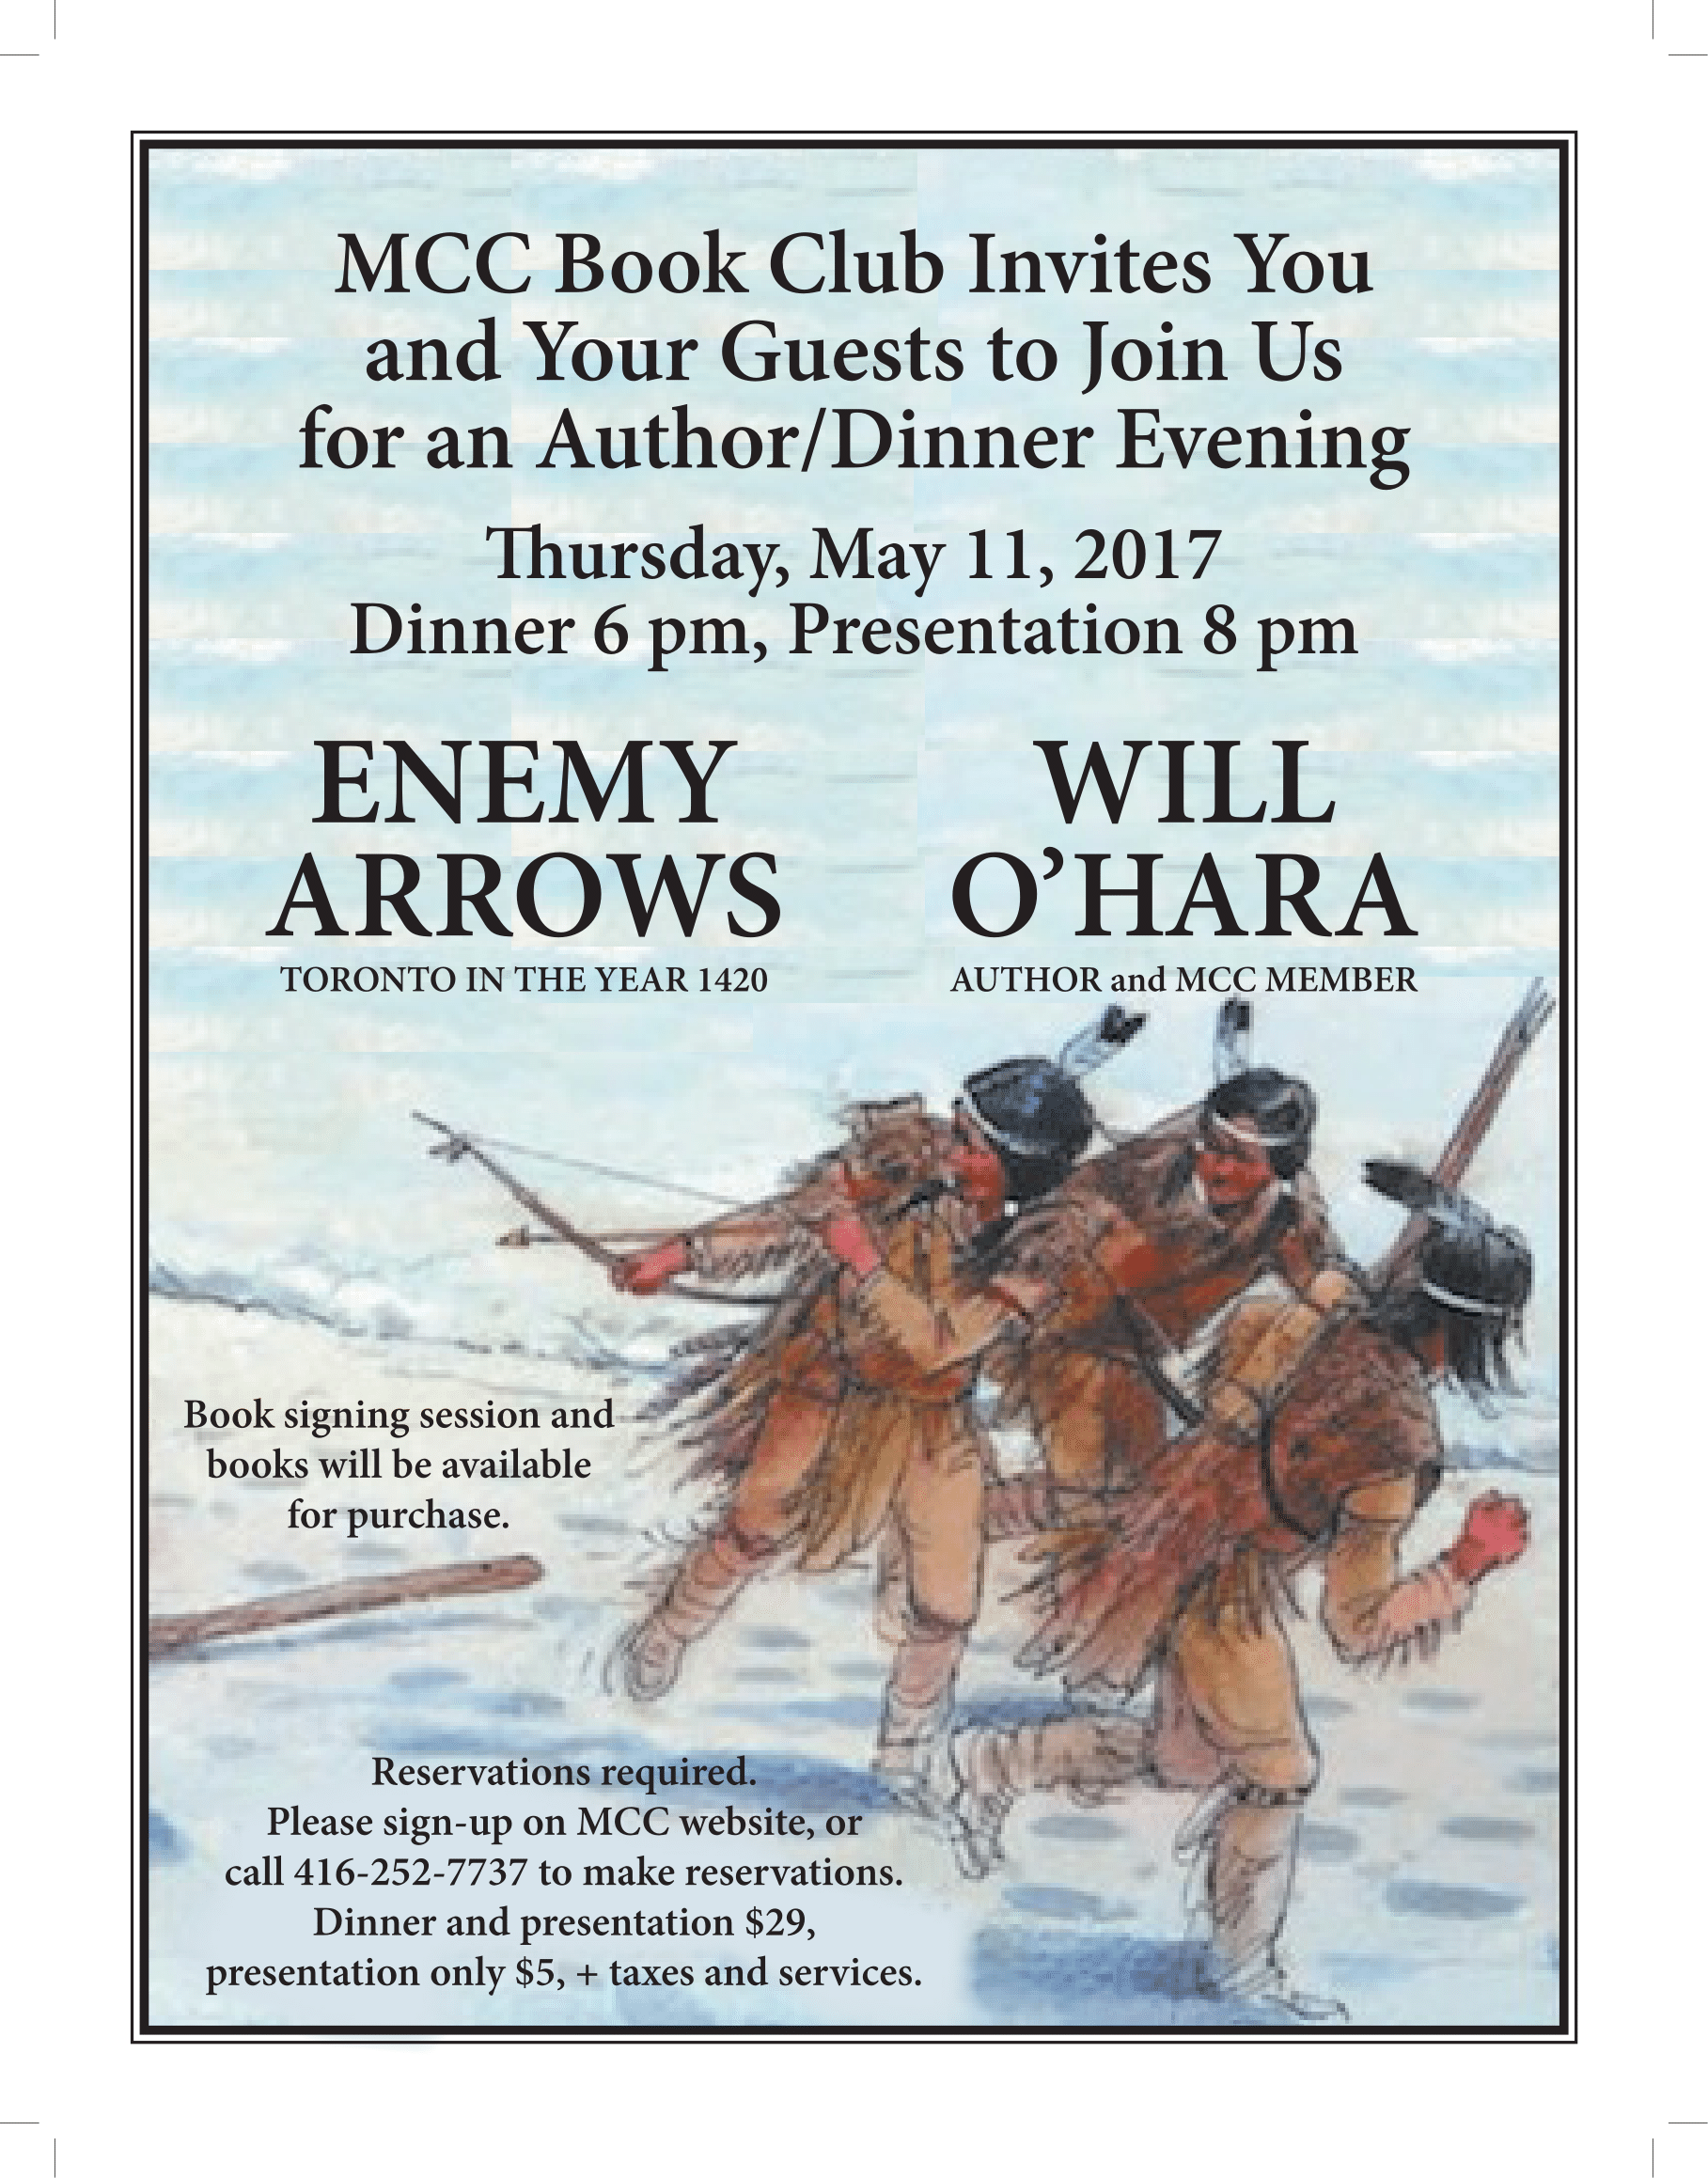 Enemy Arrows book launch featuring author Will O'Hara at Mimico Cruising Club in Toronto